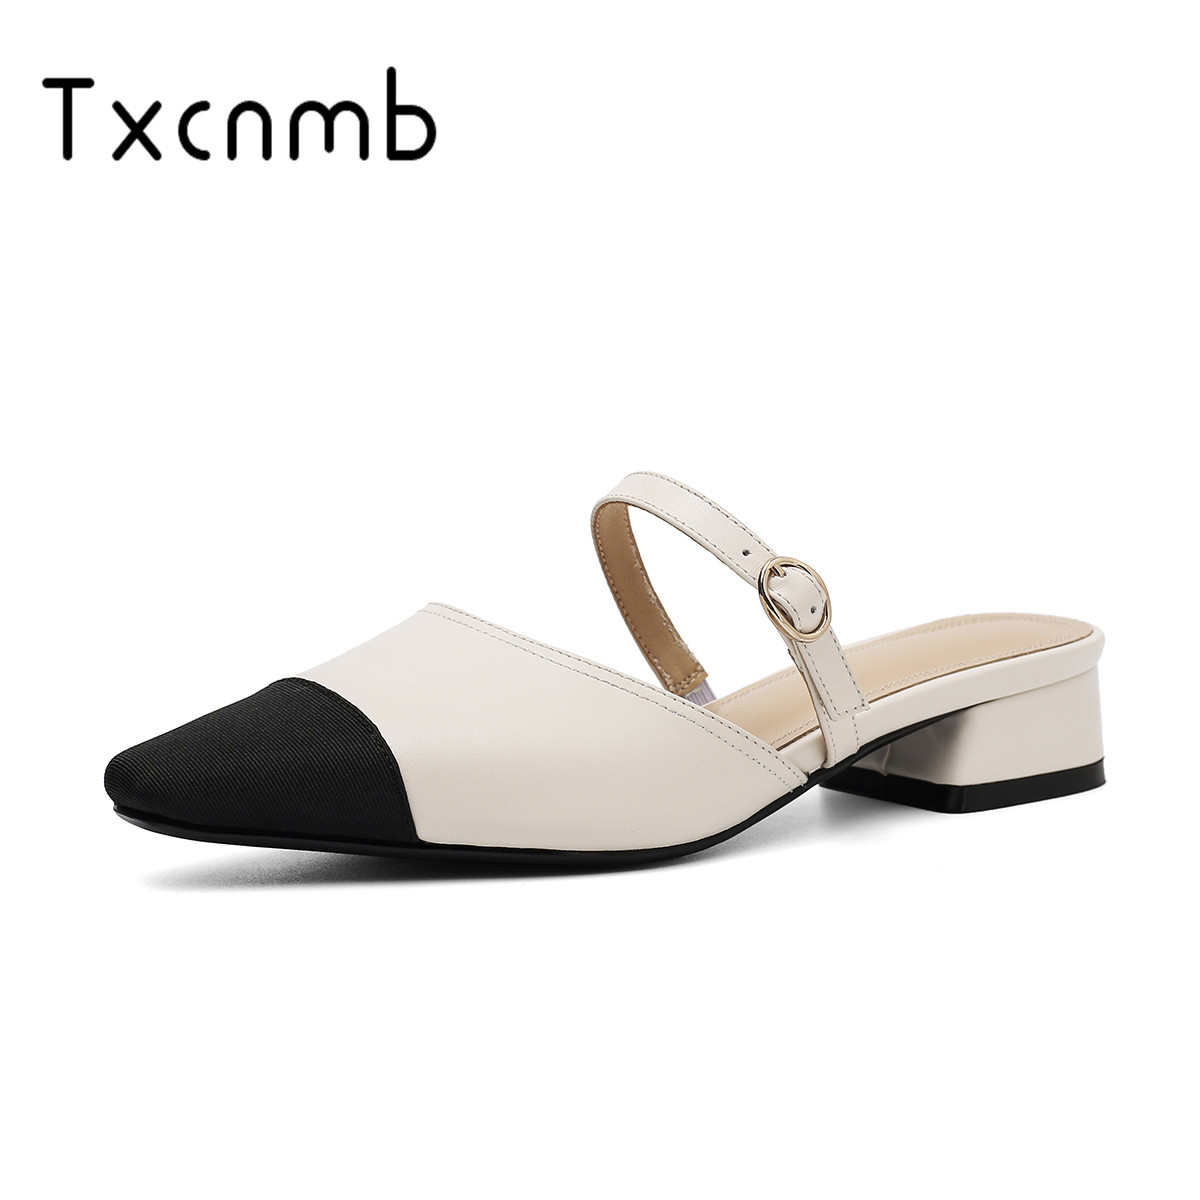 TXCNMB 2019 Summer New Fashion Concise Women Sandals Genuine leather Shallow High Heels Shoes Woman Casual Basic Party ShoesTXCNMB 2019 Summer New Fashion Concise Women Sandals Genuine leather Shallow High Heels Shoes Woman Casual Basic Party Shoes